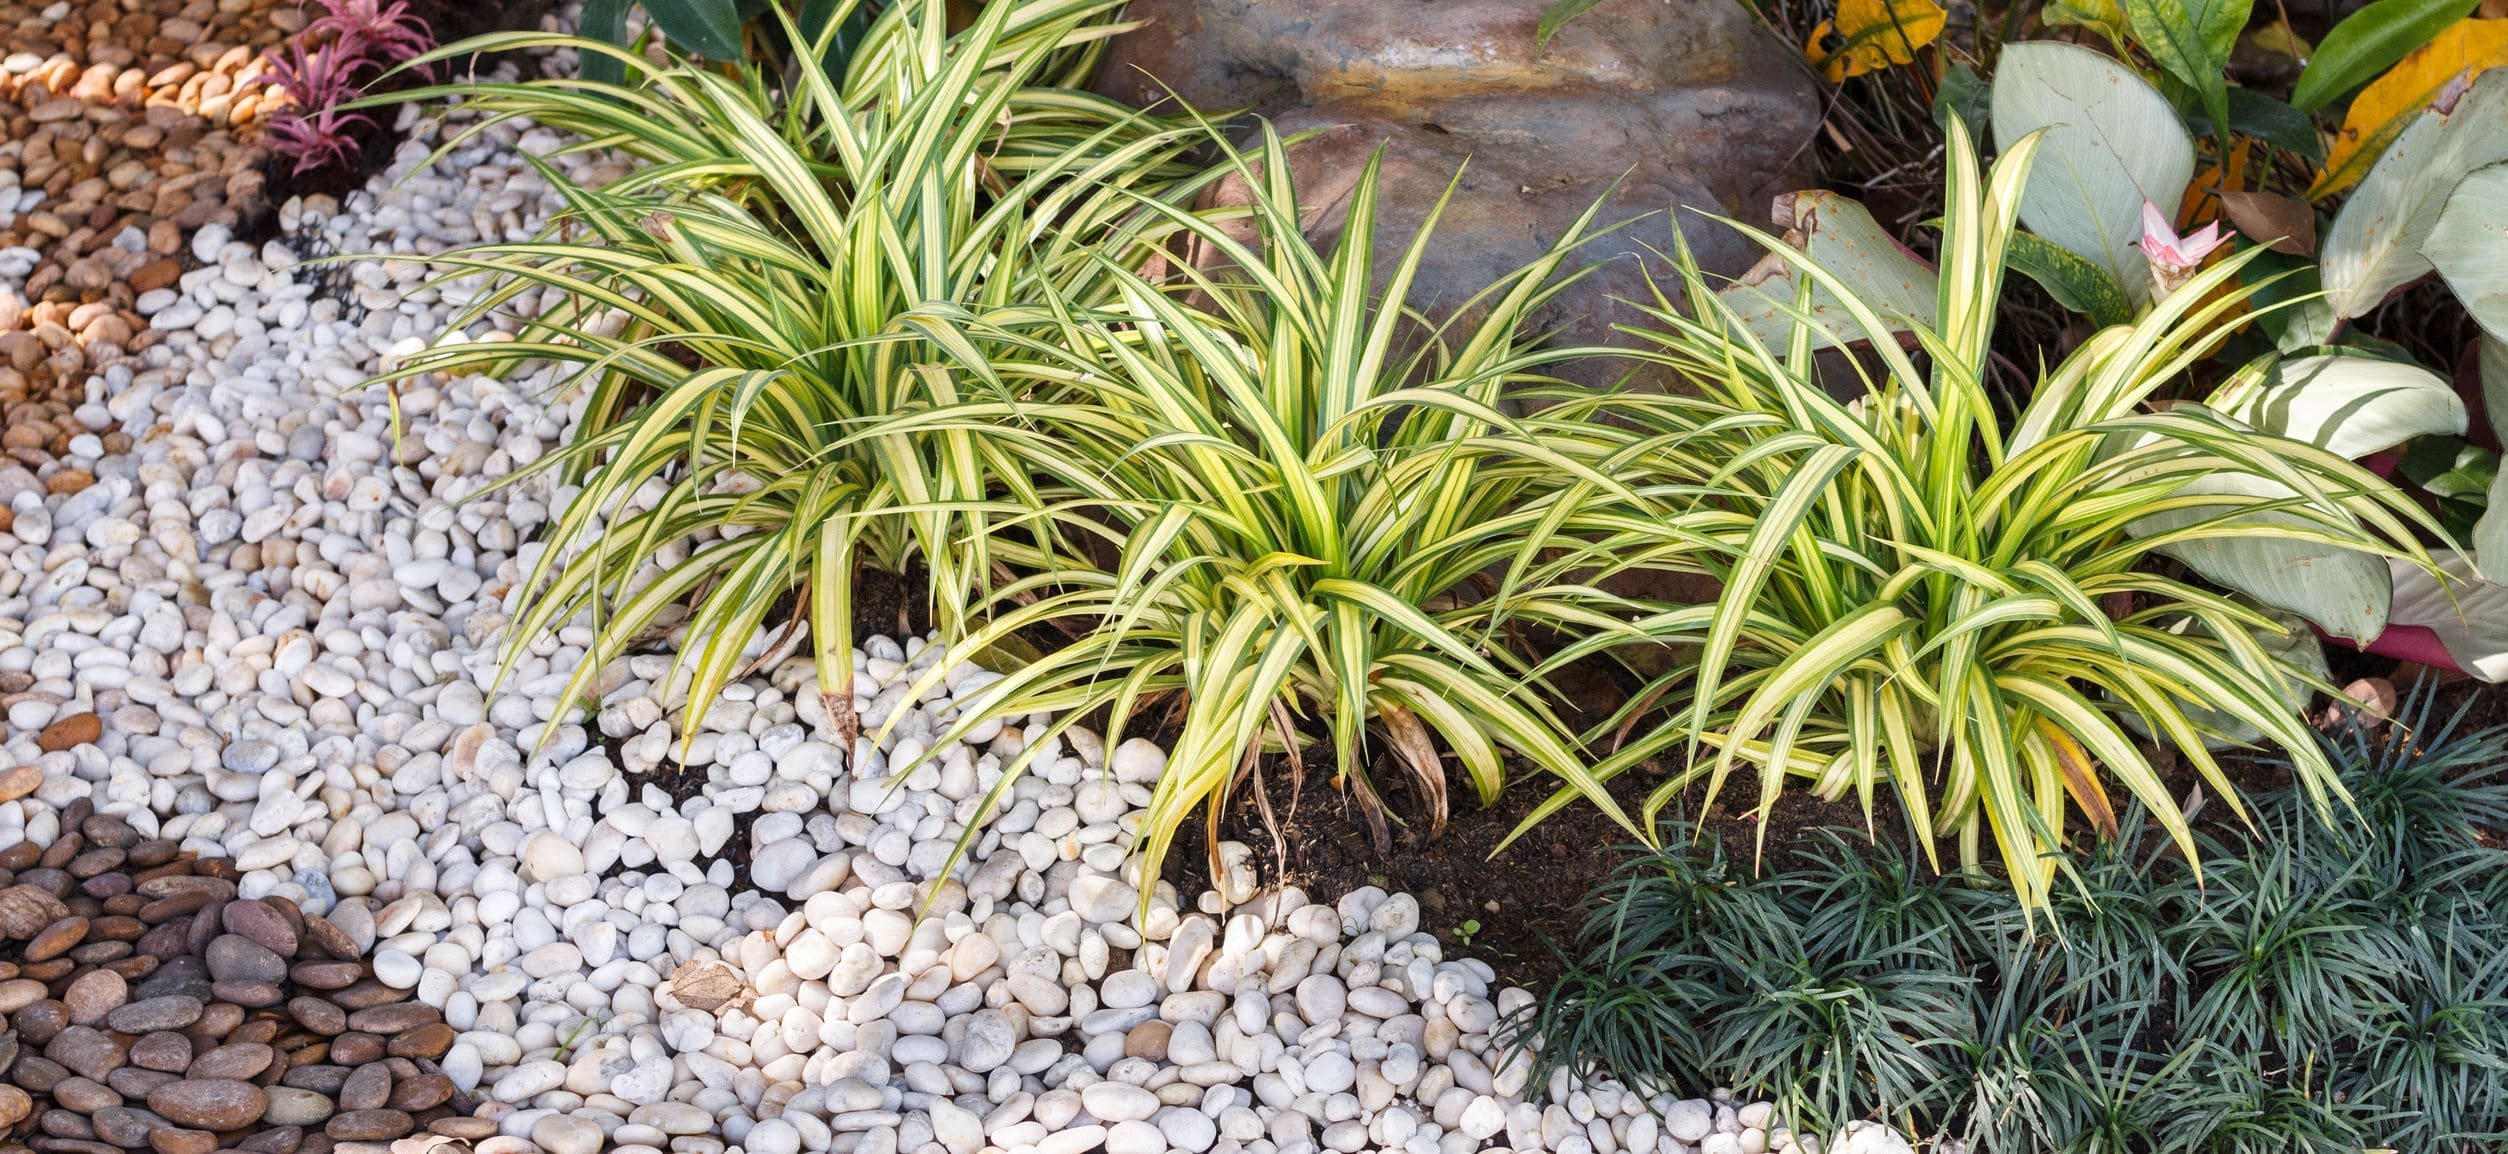 Landscaping combinations of plant and grass